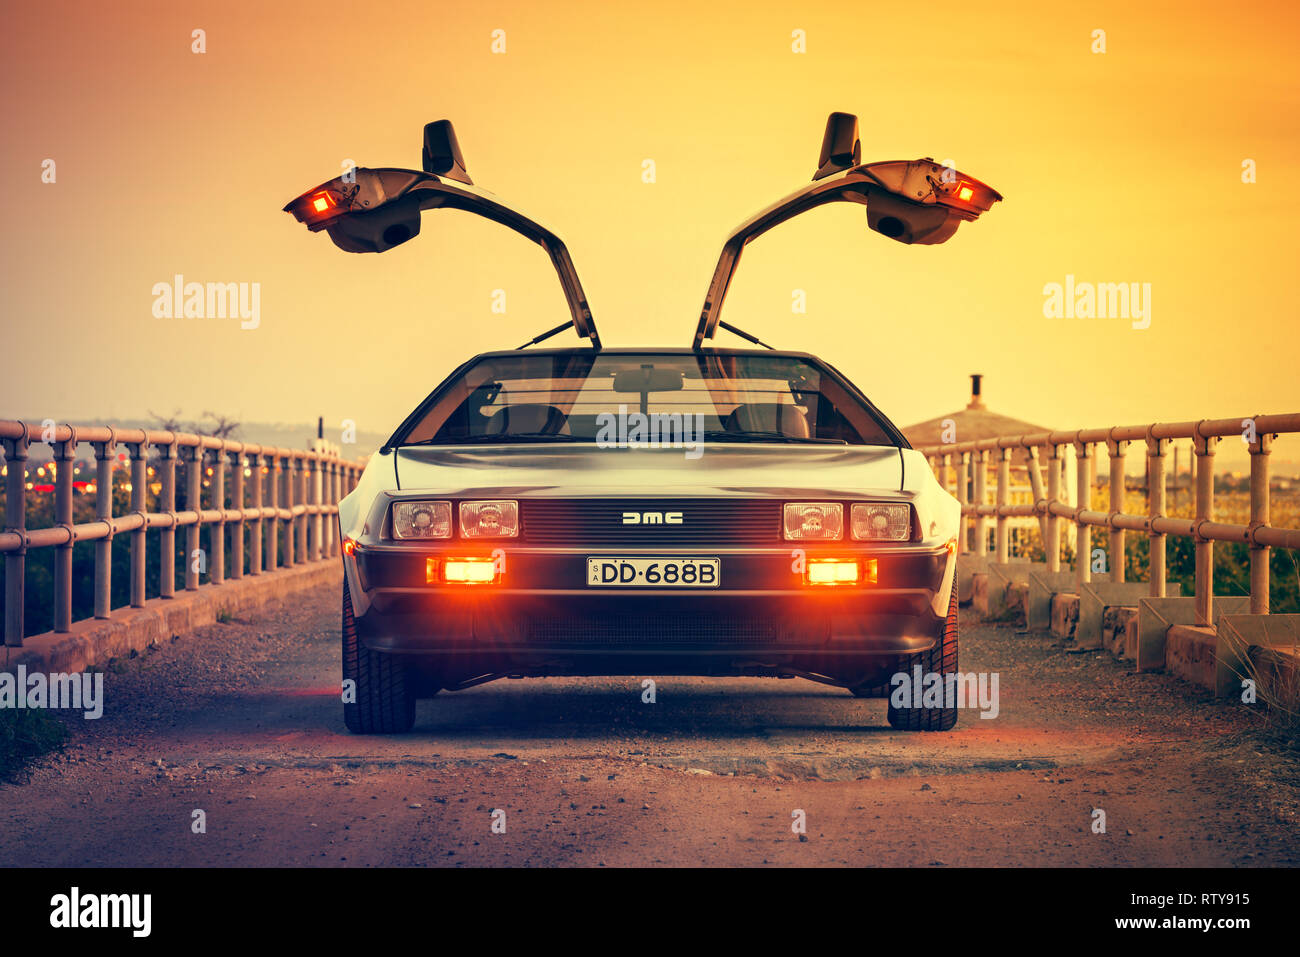 Adelaide, Australia - September 7, 2013: DeLorean DMC-12 car with opened gullwing doors parked on the bridge at dusk - Stock Image